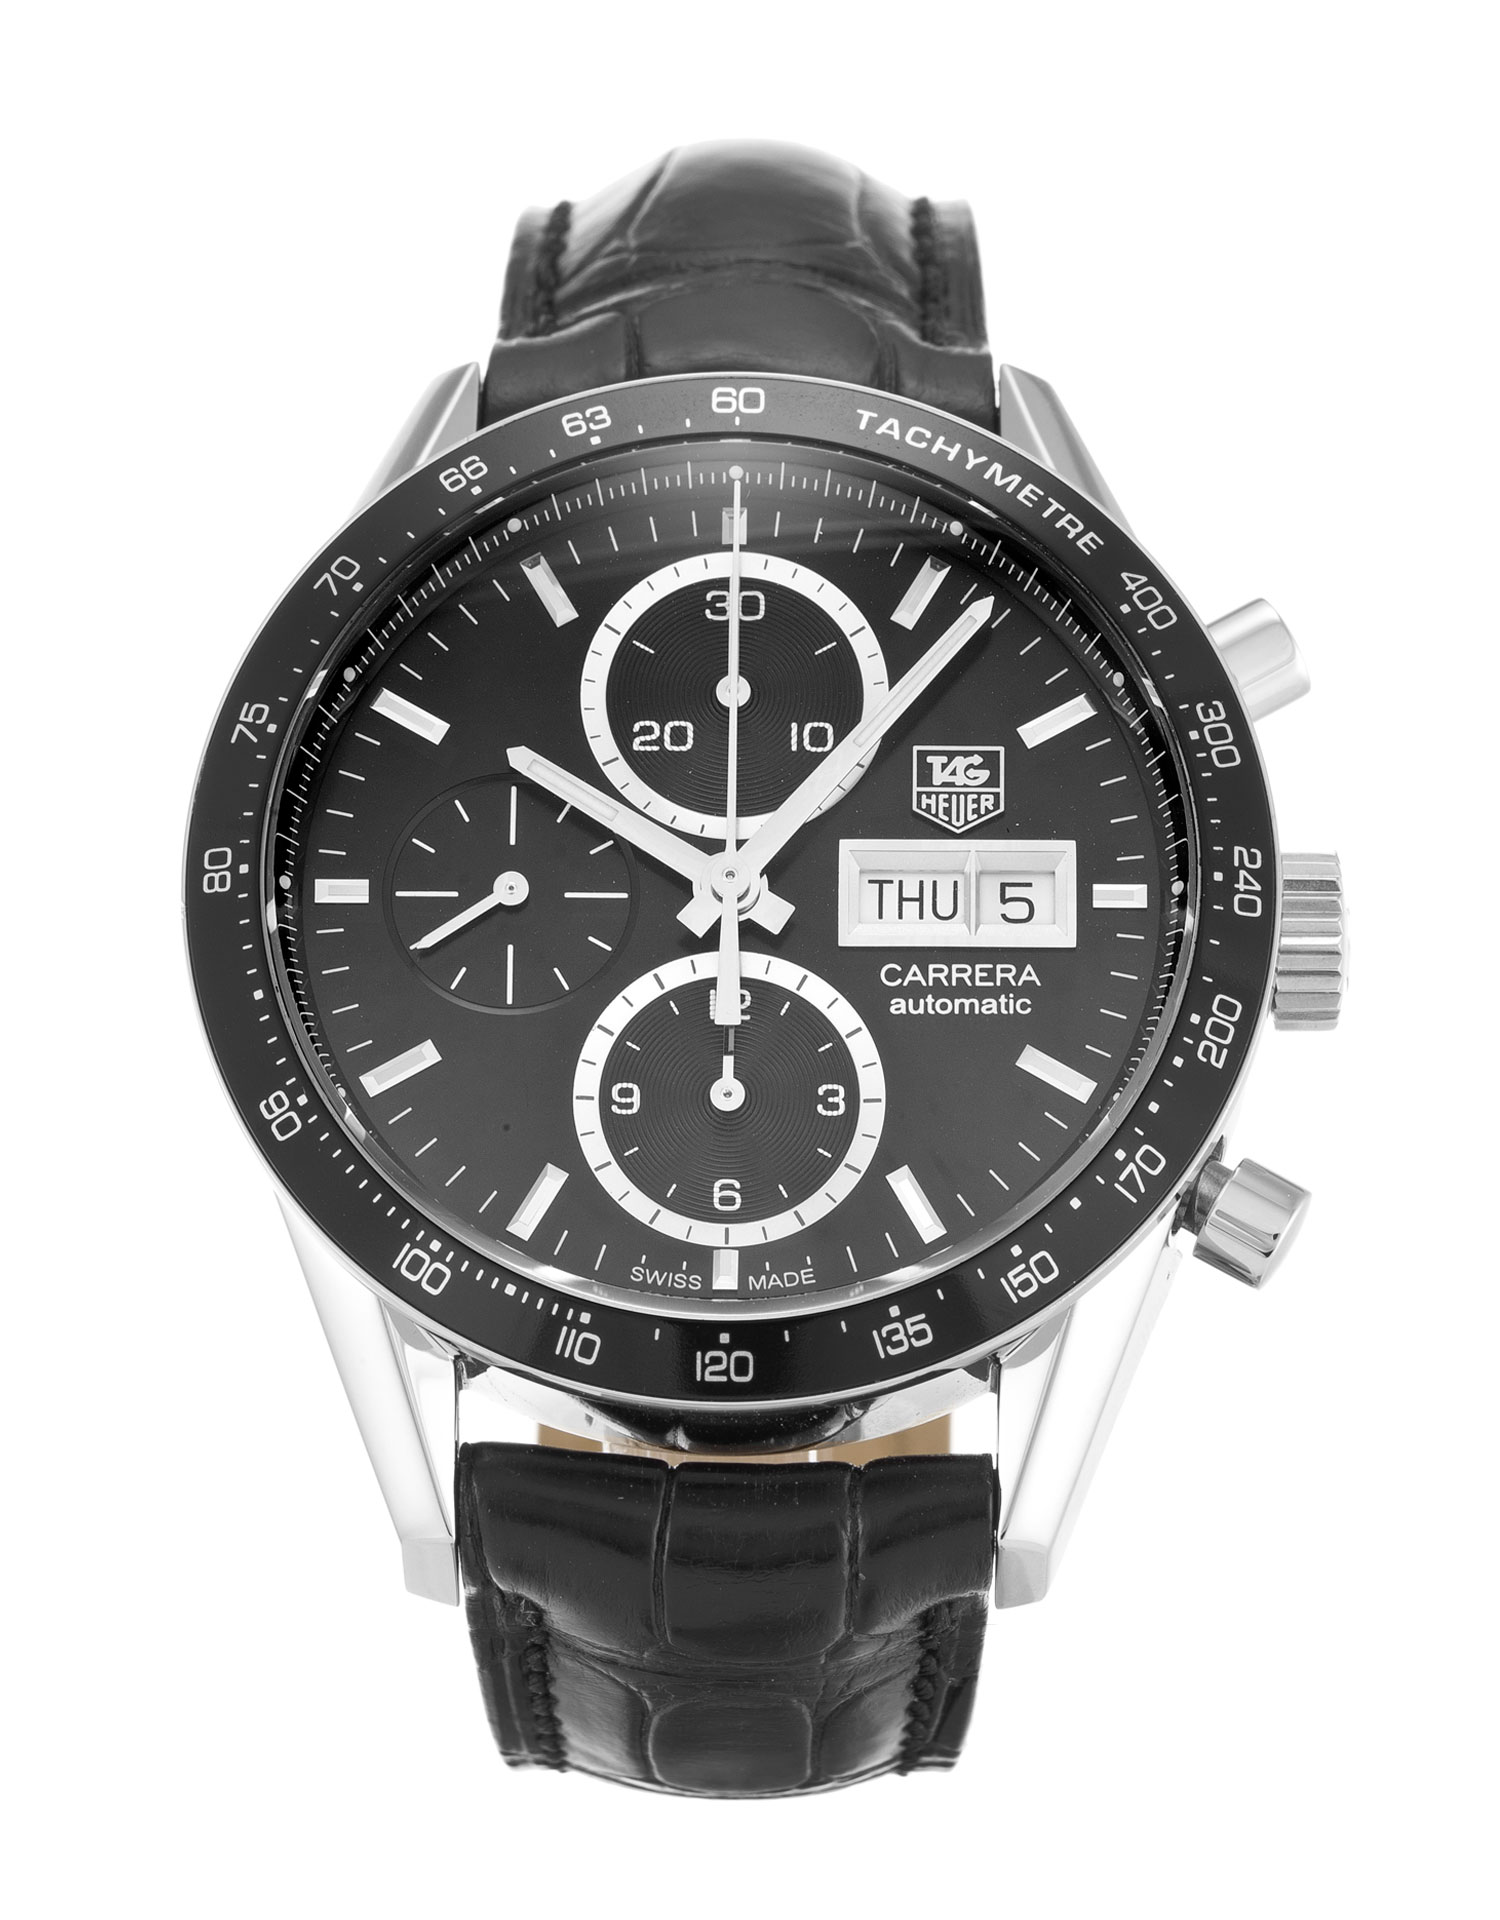 Tag Heuer Carrera Cv201ag.Fc6266 Mens 41 Mm Steel Case Automatic Movement – iapac.to